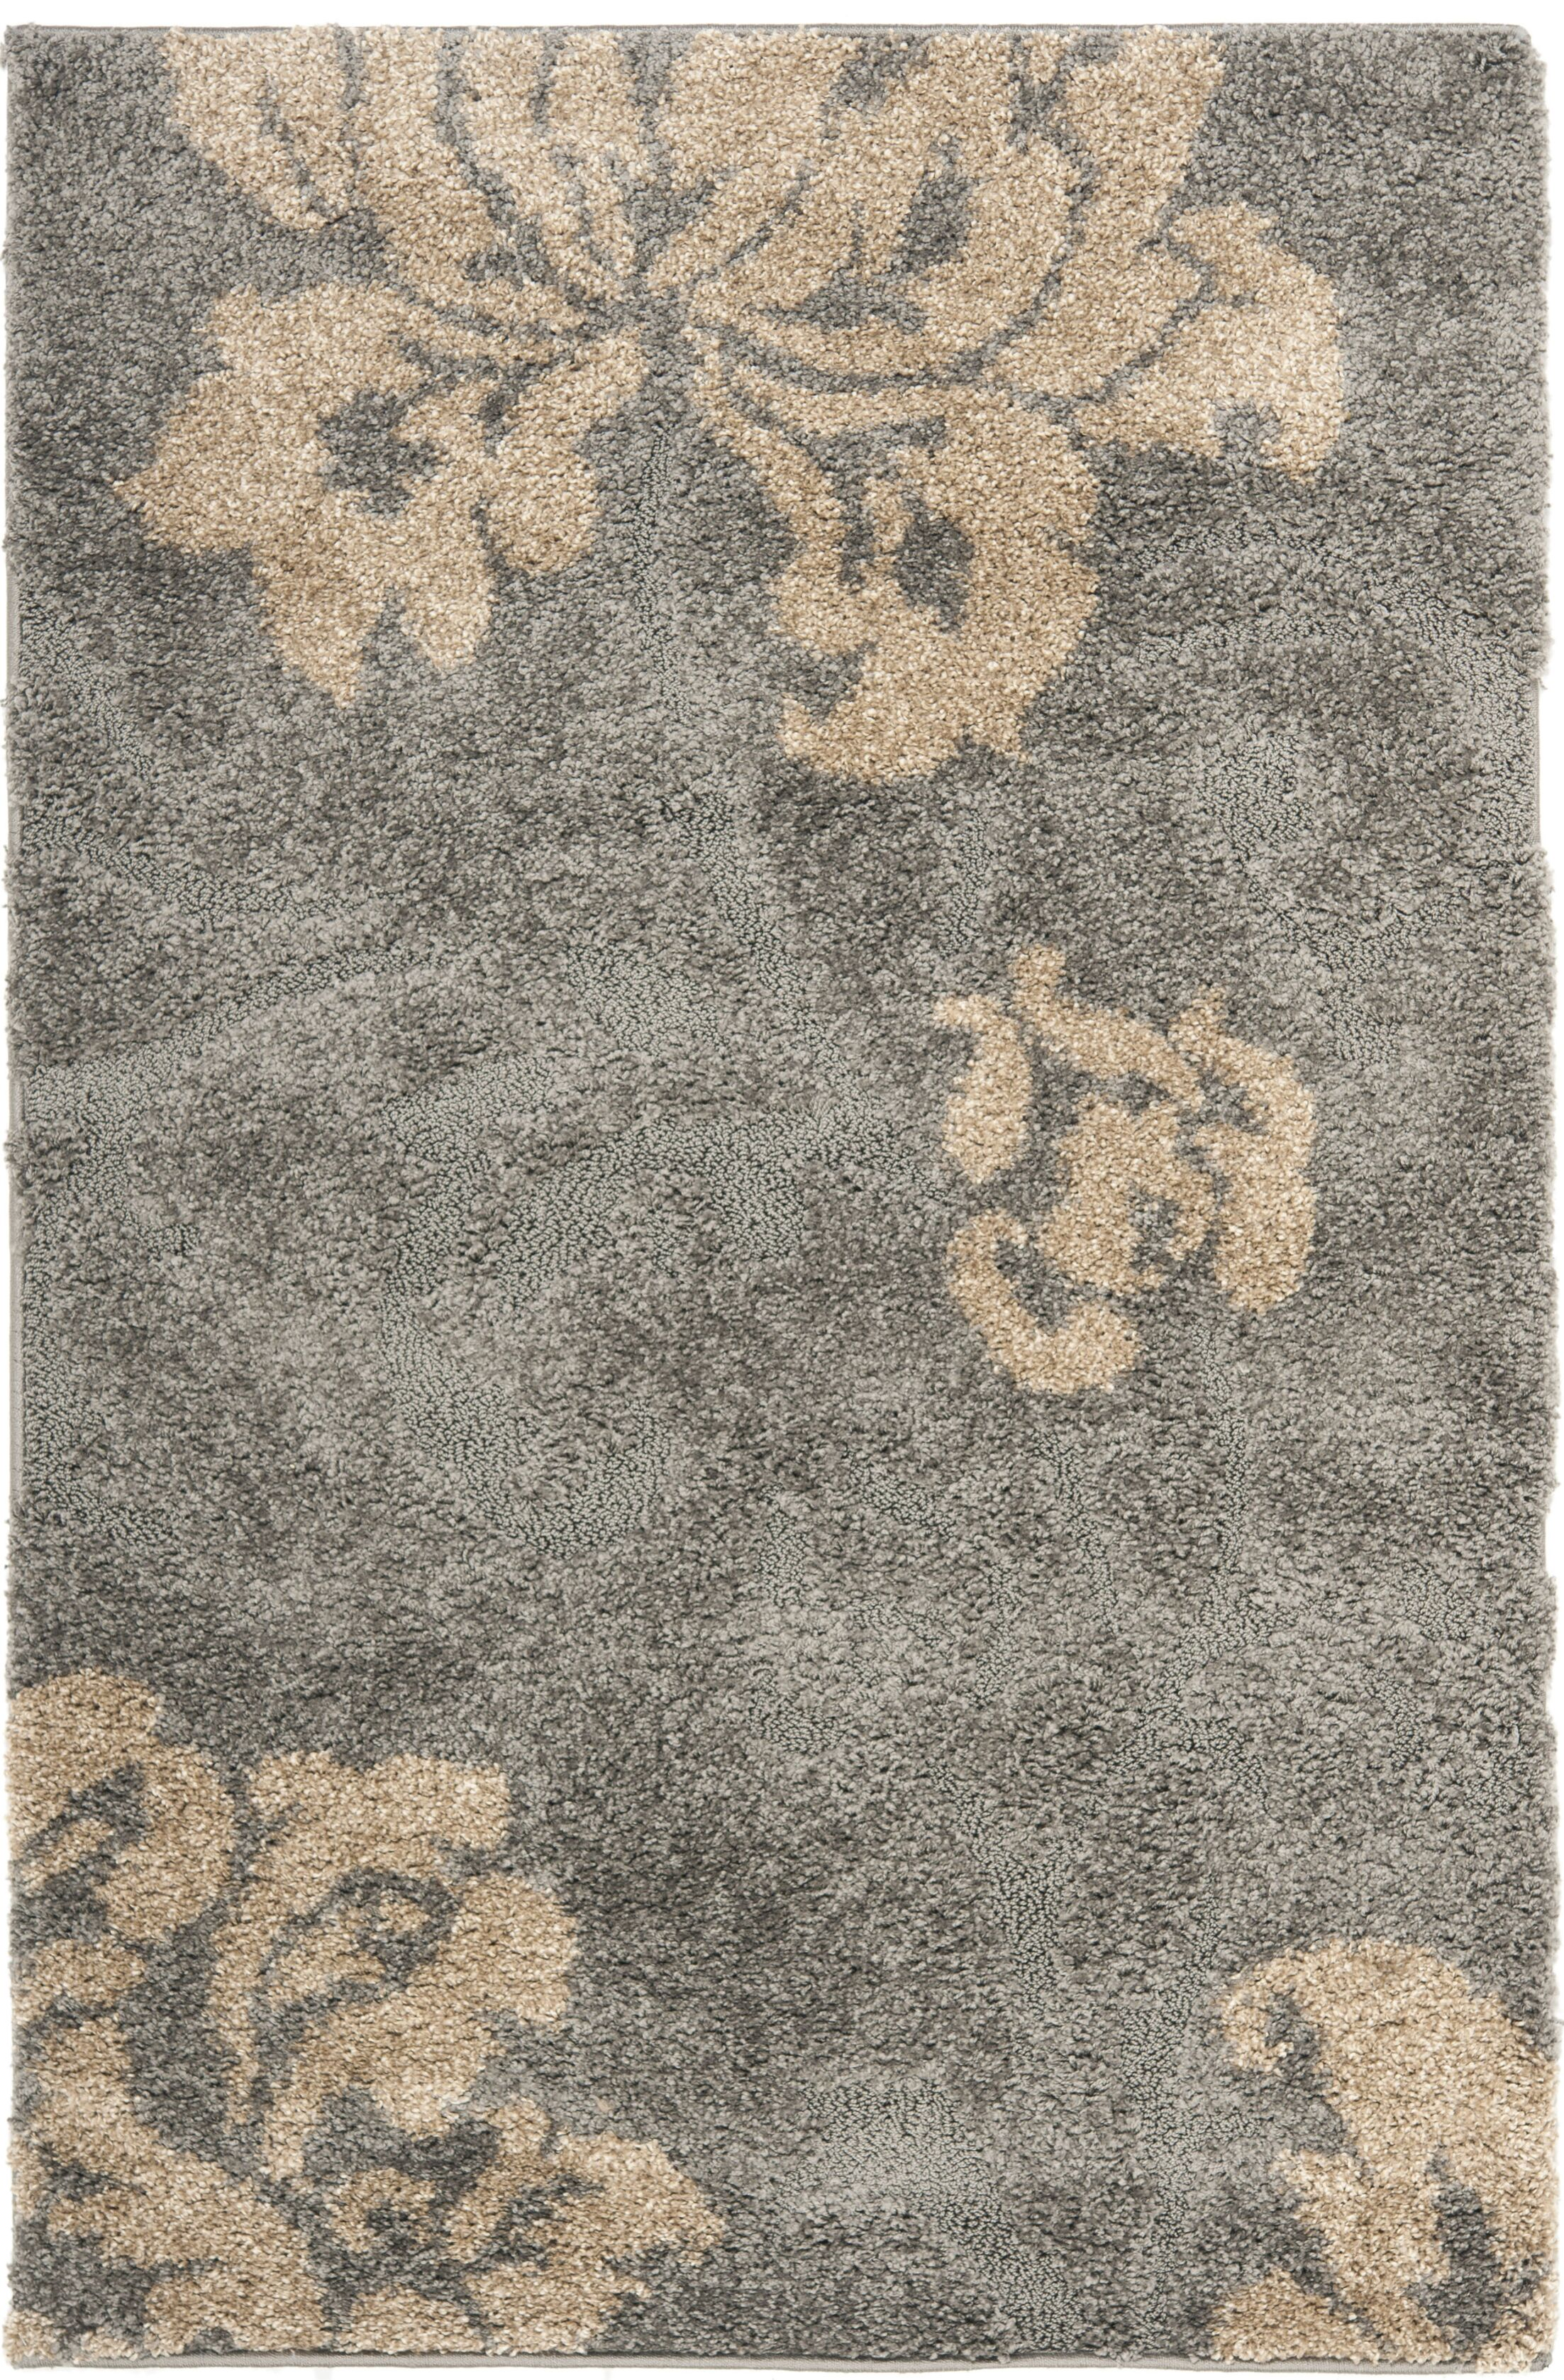 Marybell Shag Grey/Beige Area Rug Rug Size: Rectangle 6' x 9'